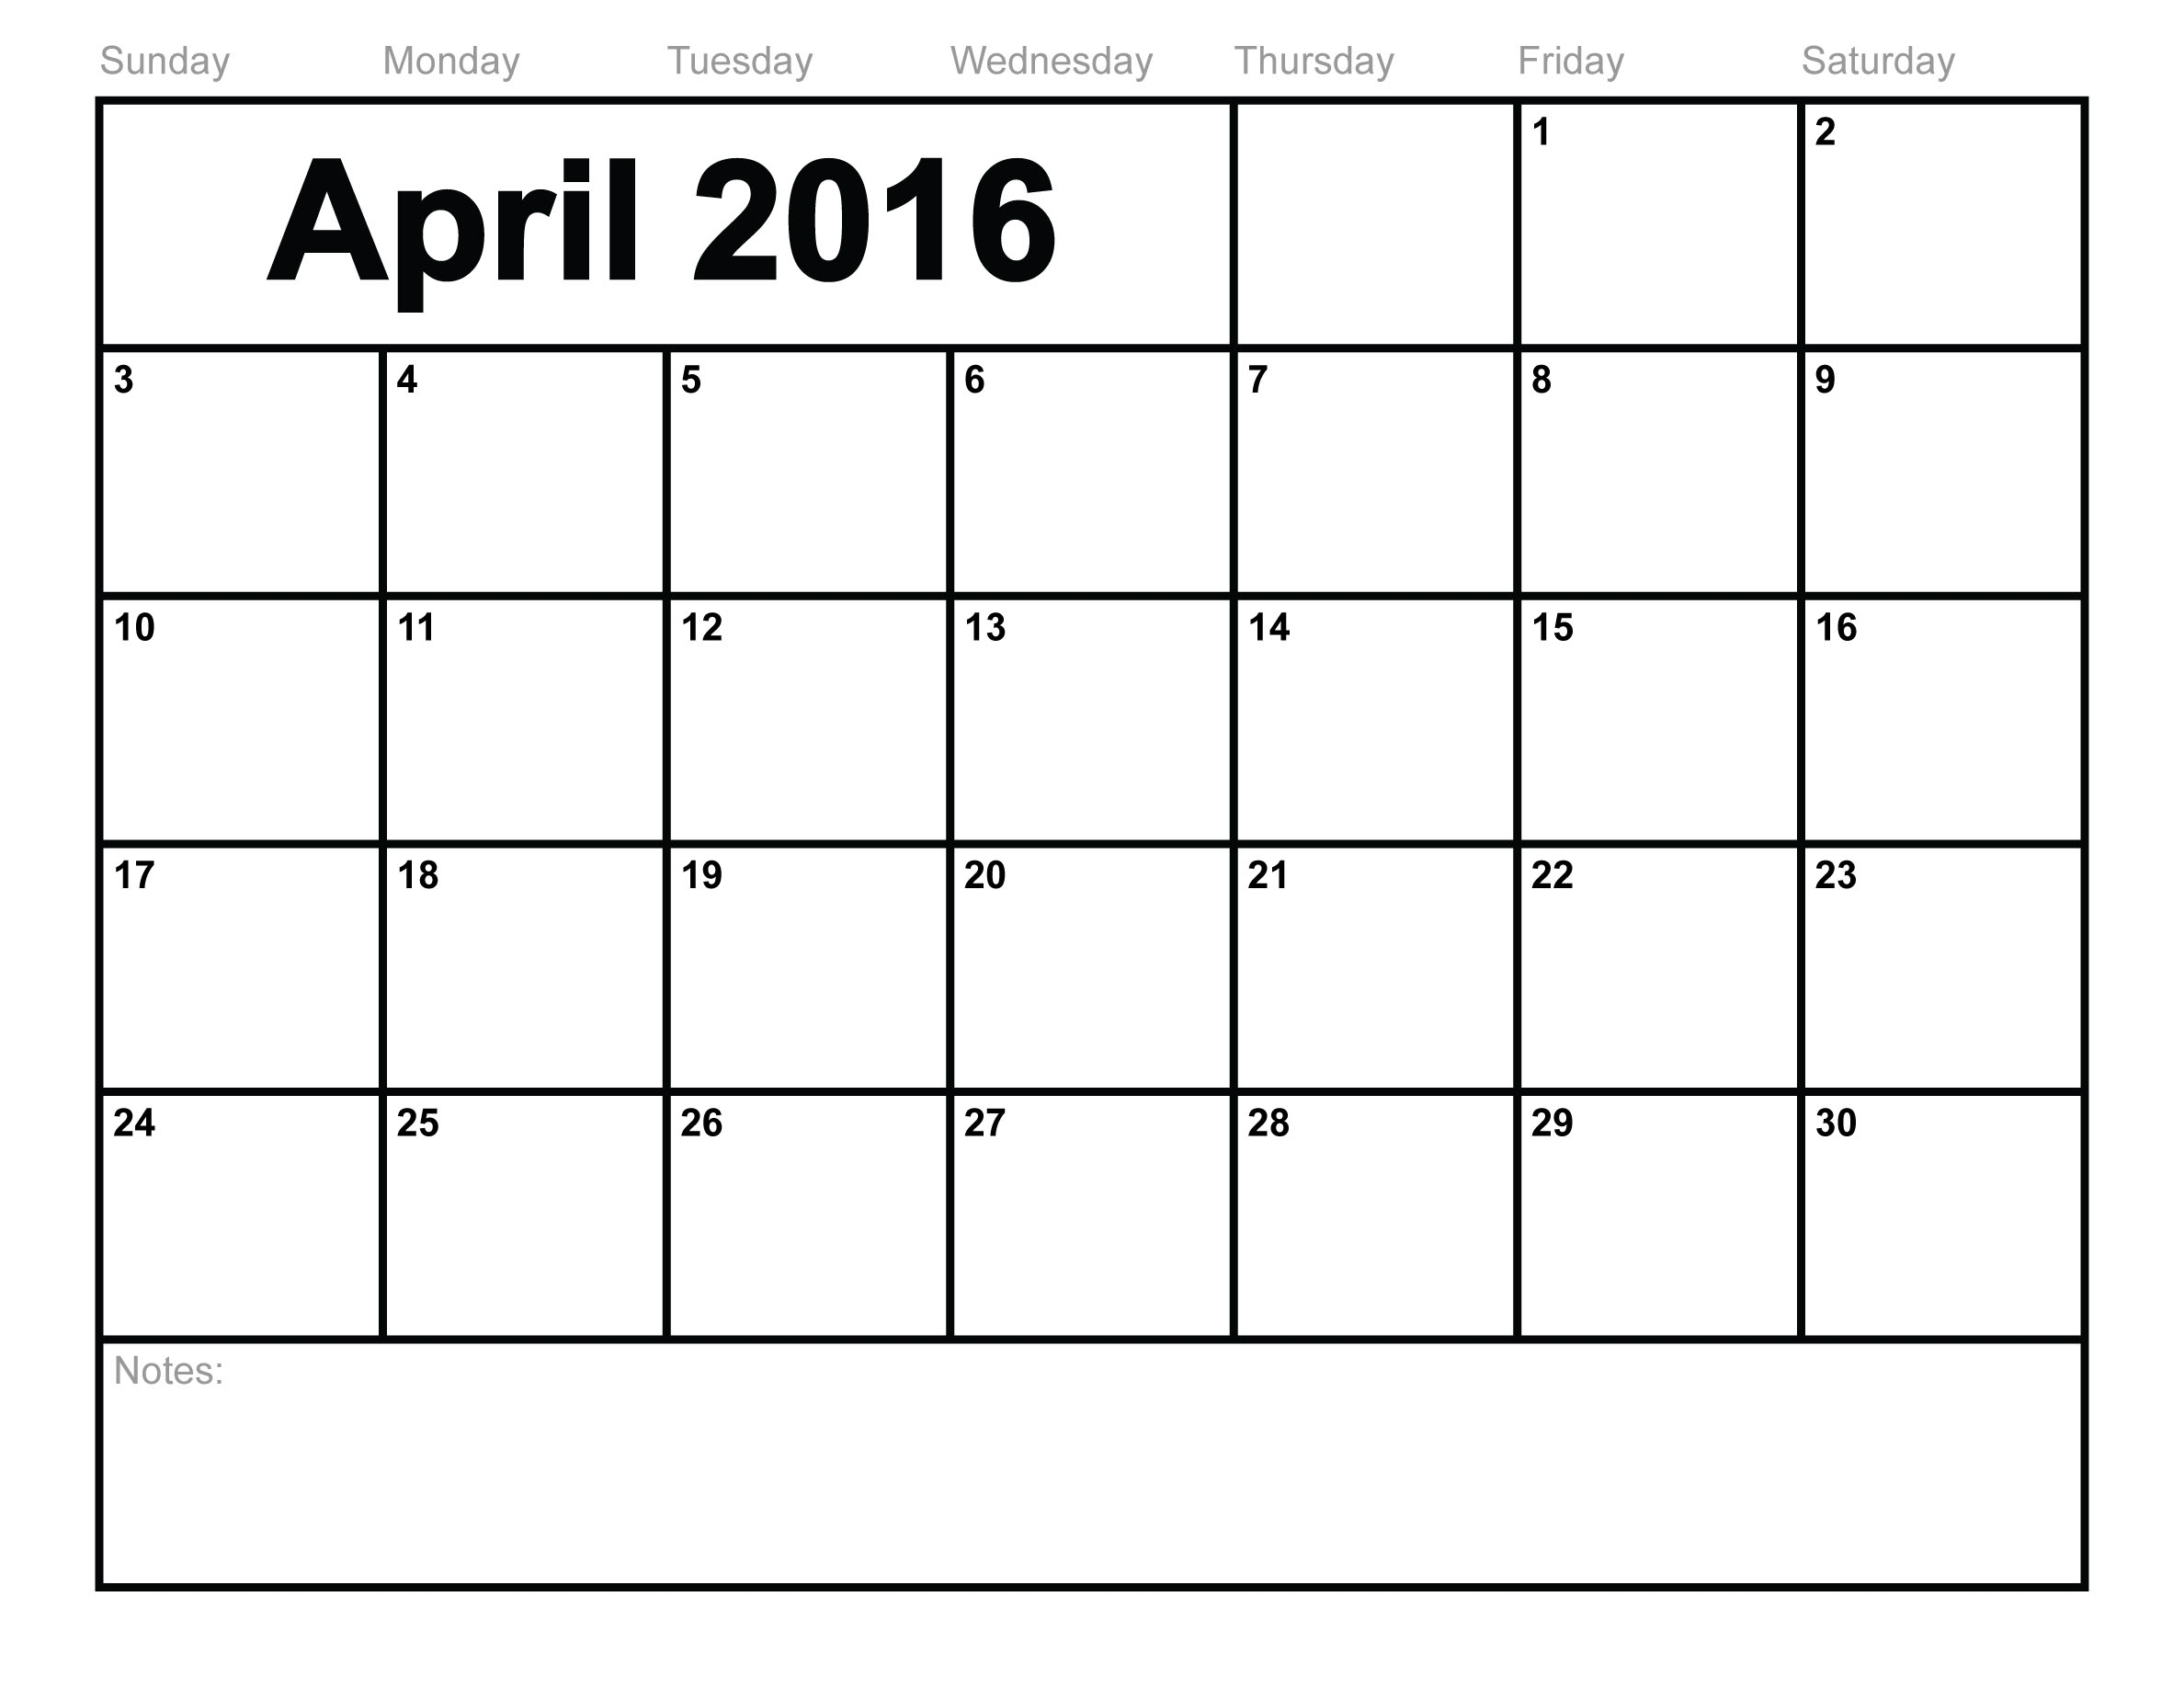 April Calendar 2016 Printable - Printable Calendar & Birthday Cards intended for Print Monthly Calendar With Lines